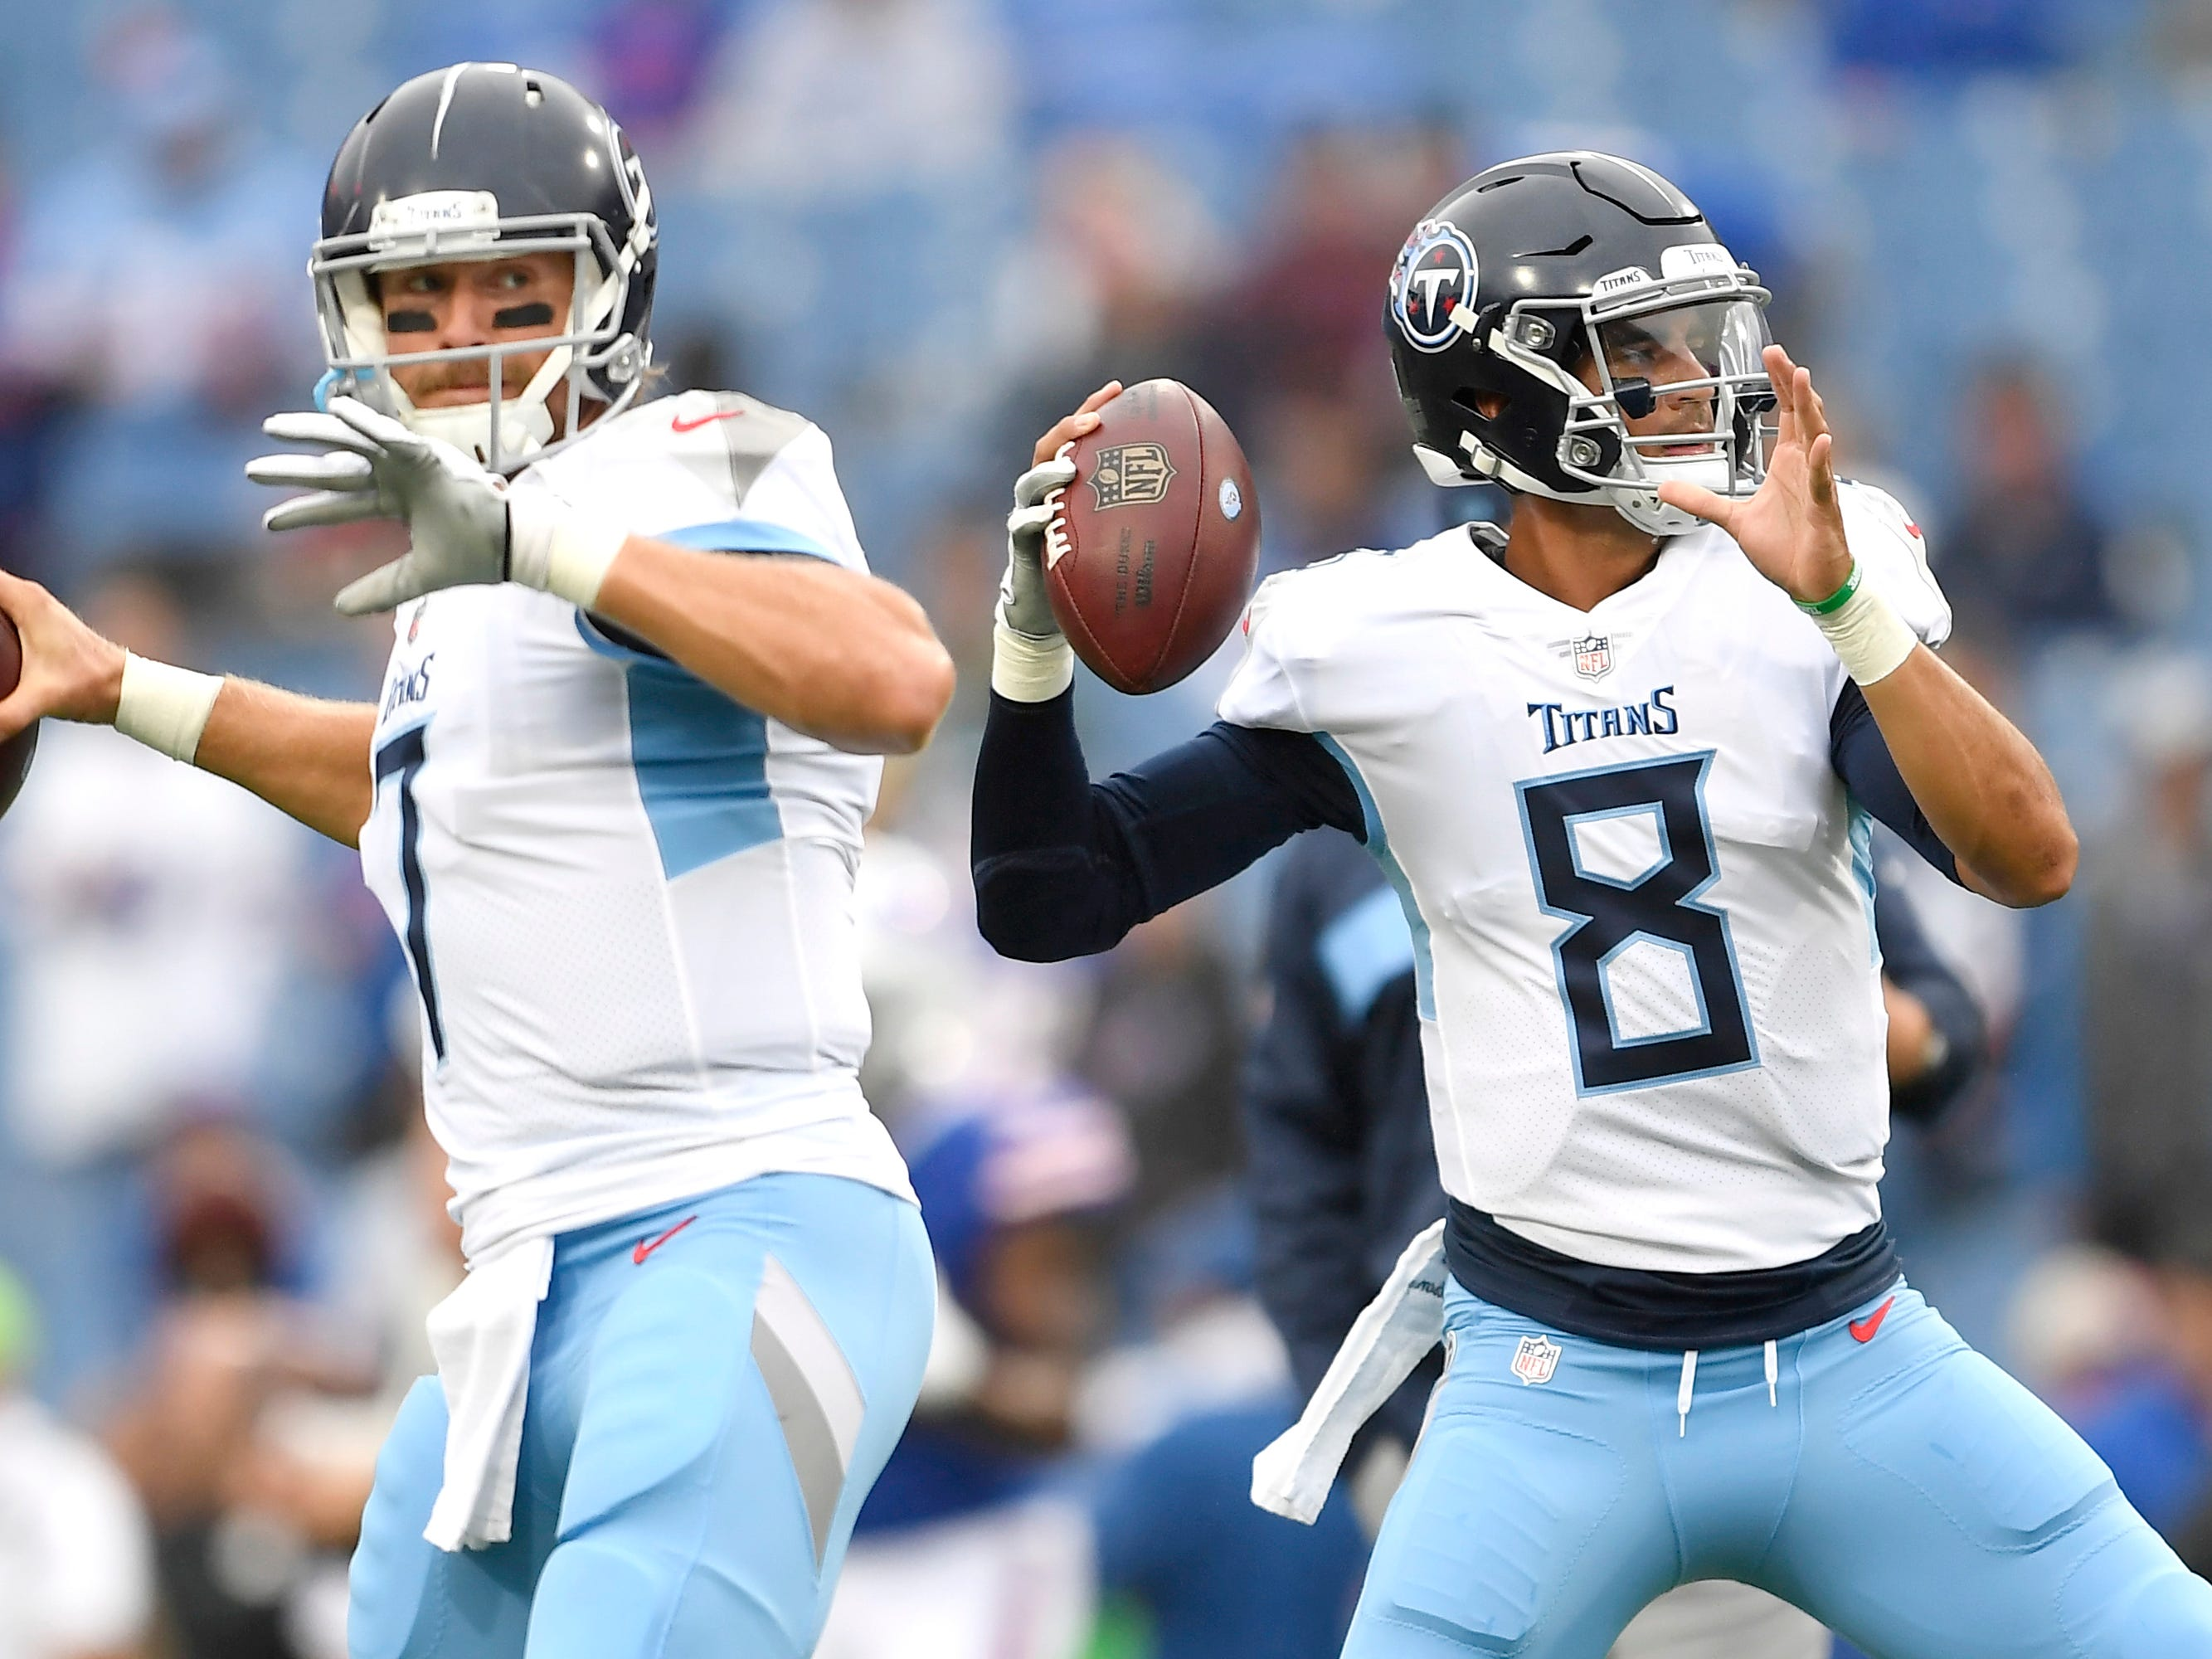 Tennessee Titans quarterback Marcus Mariota (8) and quarterback Blaine Gabbert (7) work out prior to an NFL football game against the Buffalo Bills, Sunday, Oct. 7, 2018, in Orchard Park, N.Y. (AP Photo/Adrian Kraus)